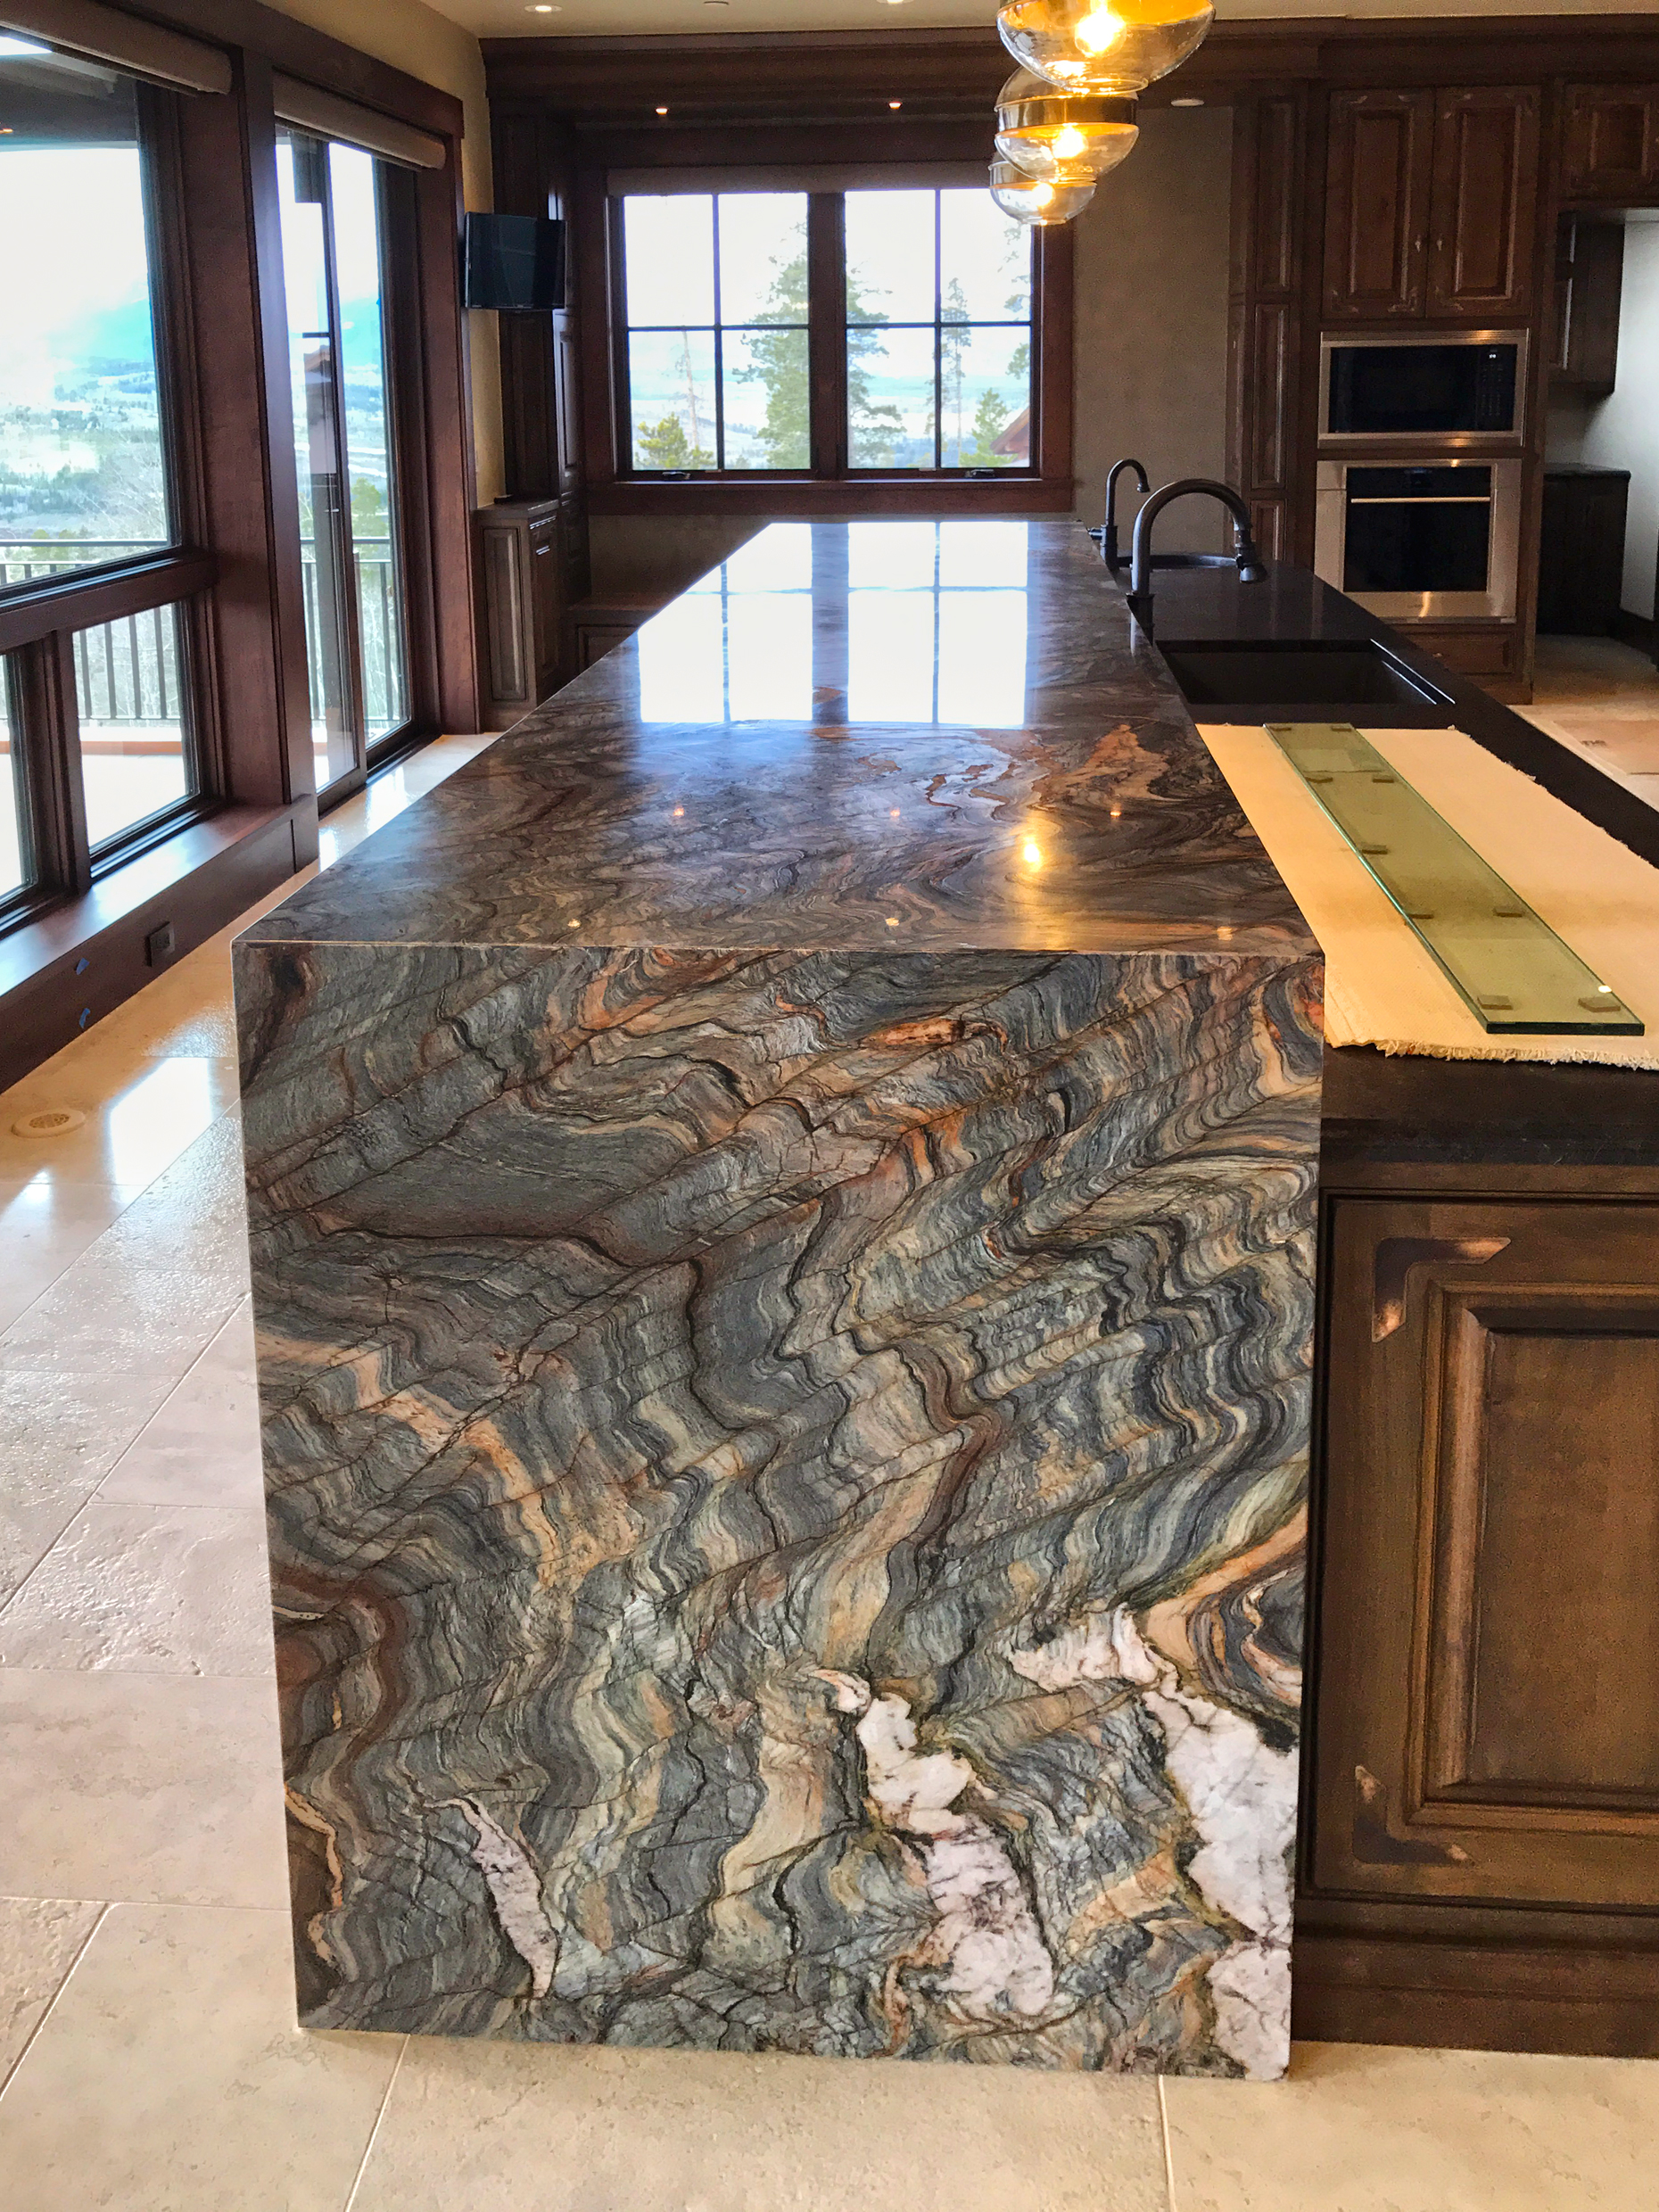 Fusion Granite itchen island. 6cm Mitred waterfall edges. 6cm mirrored flat polish edge. 6cm Laminate waterfall side panels. YK Stone Center Installed